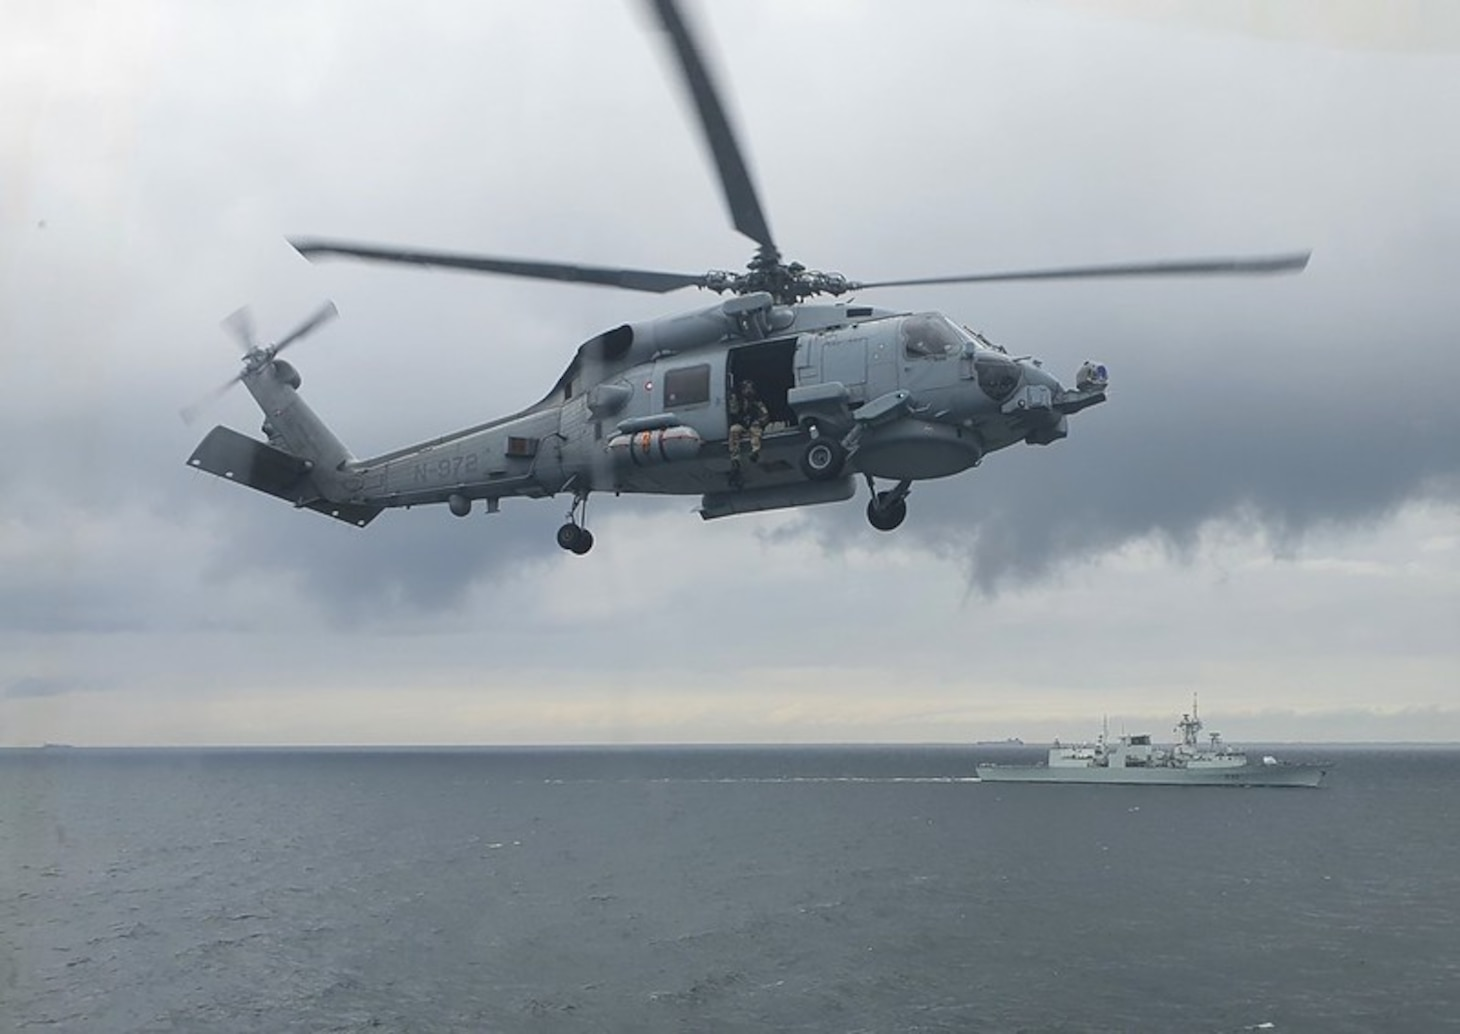 The embarked MH-60 Seahawk Helicopter (RAIDER) of Standing NATO Maritime Group One (SNMG1) ship HDMS Absalon participates in a Naval Gunnery Support (NGS) training serial in the Baltic Sea on June 12, 2021 during Exercise BALTOPS 50. SNMG1 Flagship HMCS Halifax can also be seen in the background of the image. RAIDER acted as a spotter for HDMS Absalon and coordinated the NGS fires with elements located ashore from enhanced Forward Presence (eFP) Poland, enhanced Forward Presence (eFP) Estonia, and the German 9th Panzer Division at the Putlos Training Area Range in Germany. NATO warships are highly skilled and experienced at joint warfighting operations and can be called upon to engage and if necessary, neutralize targets ashore with precise naval gunnery in support of amphibious or land forces operations. BALTOPS is an annual joint, multinational maritime-focused defence exercise designed to enhance interoperability, flexibility, and demonstrate resolve among Allied and partner forces to defend the Baltic Sea Region. It involves maritime and air forces, strengthening combined response capabilities necessary to ensure regional security and stability.